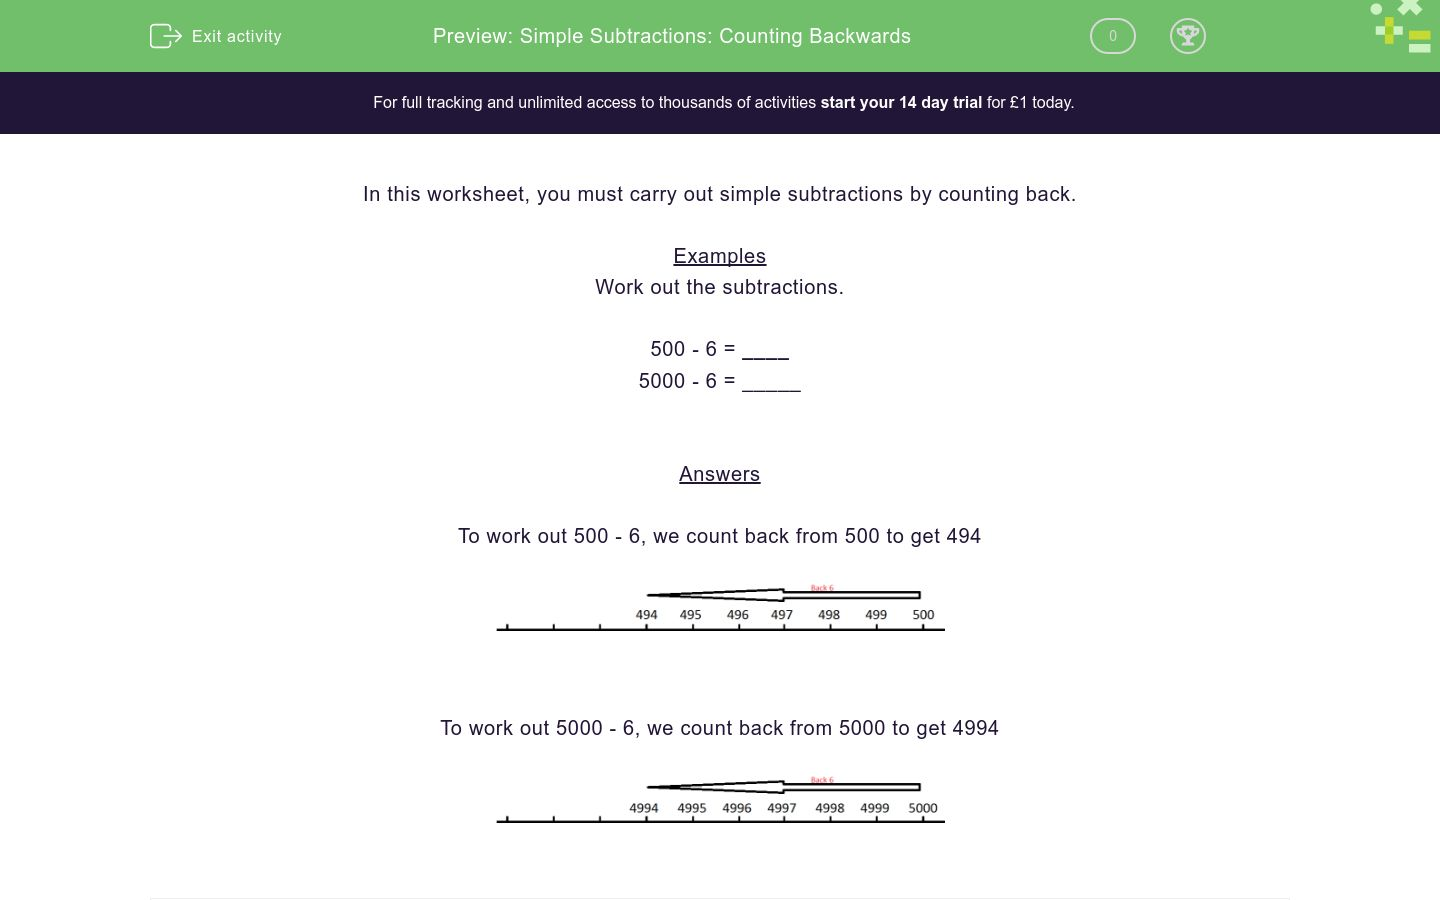 'Simple Subtractions: Counting Backwards' worksheet